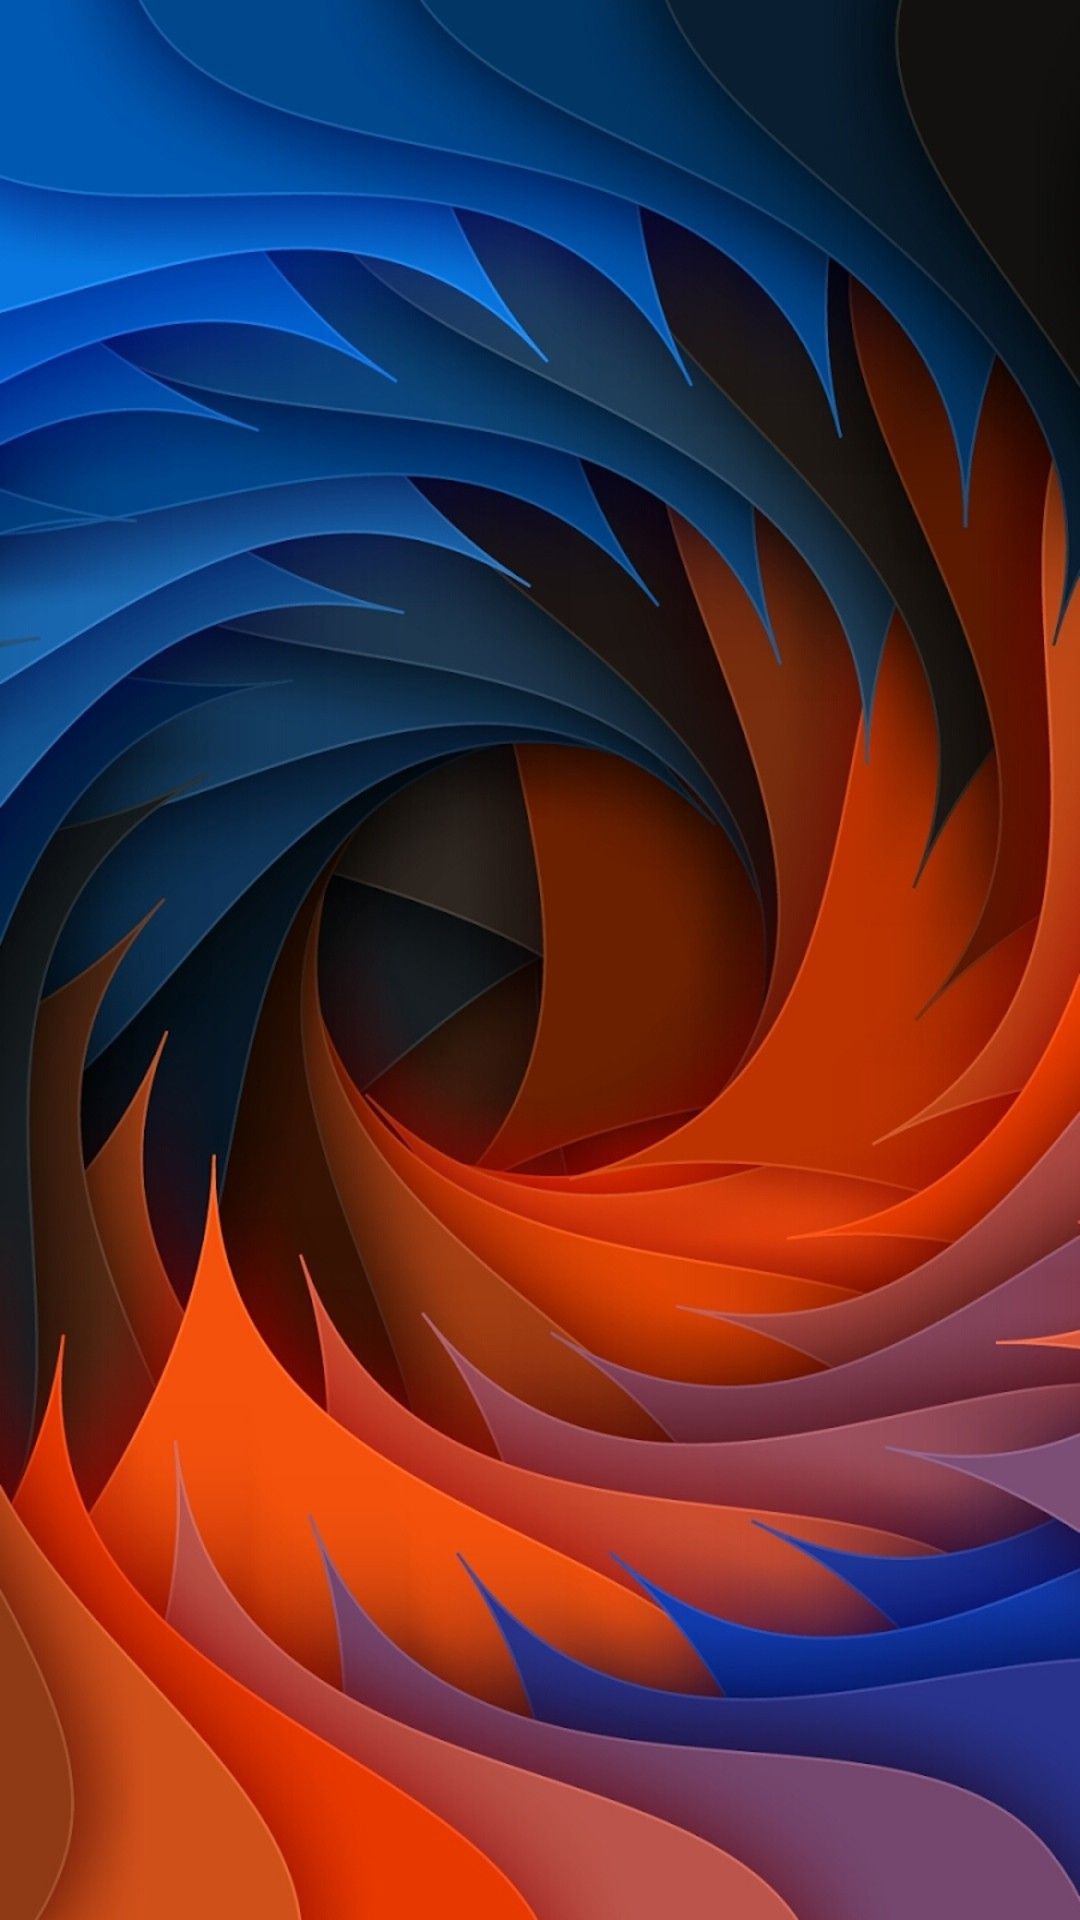 Colorful Swirl Abstract Wallpaper Abstract Iphone Wallpaper Abstract Wallpaper Iphone Wallpaper